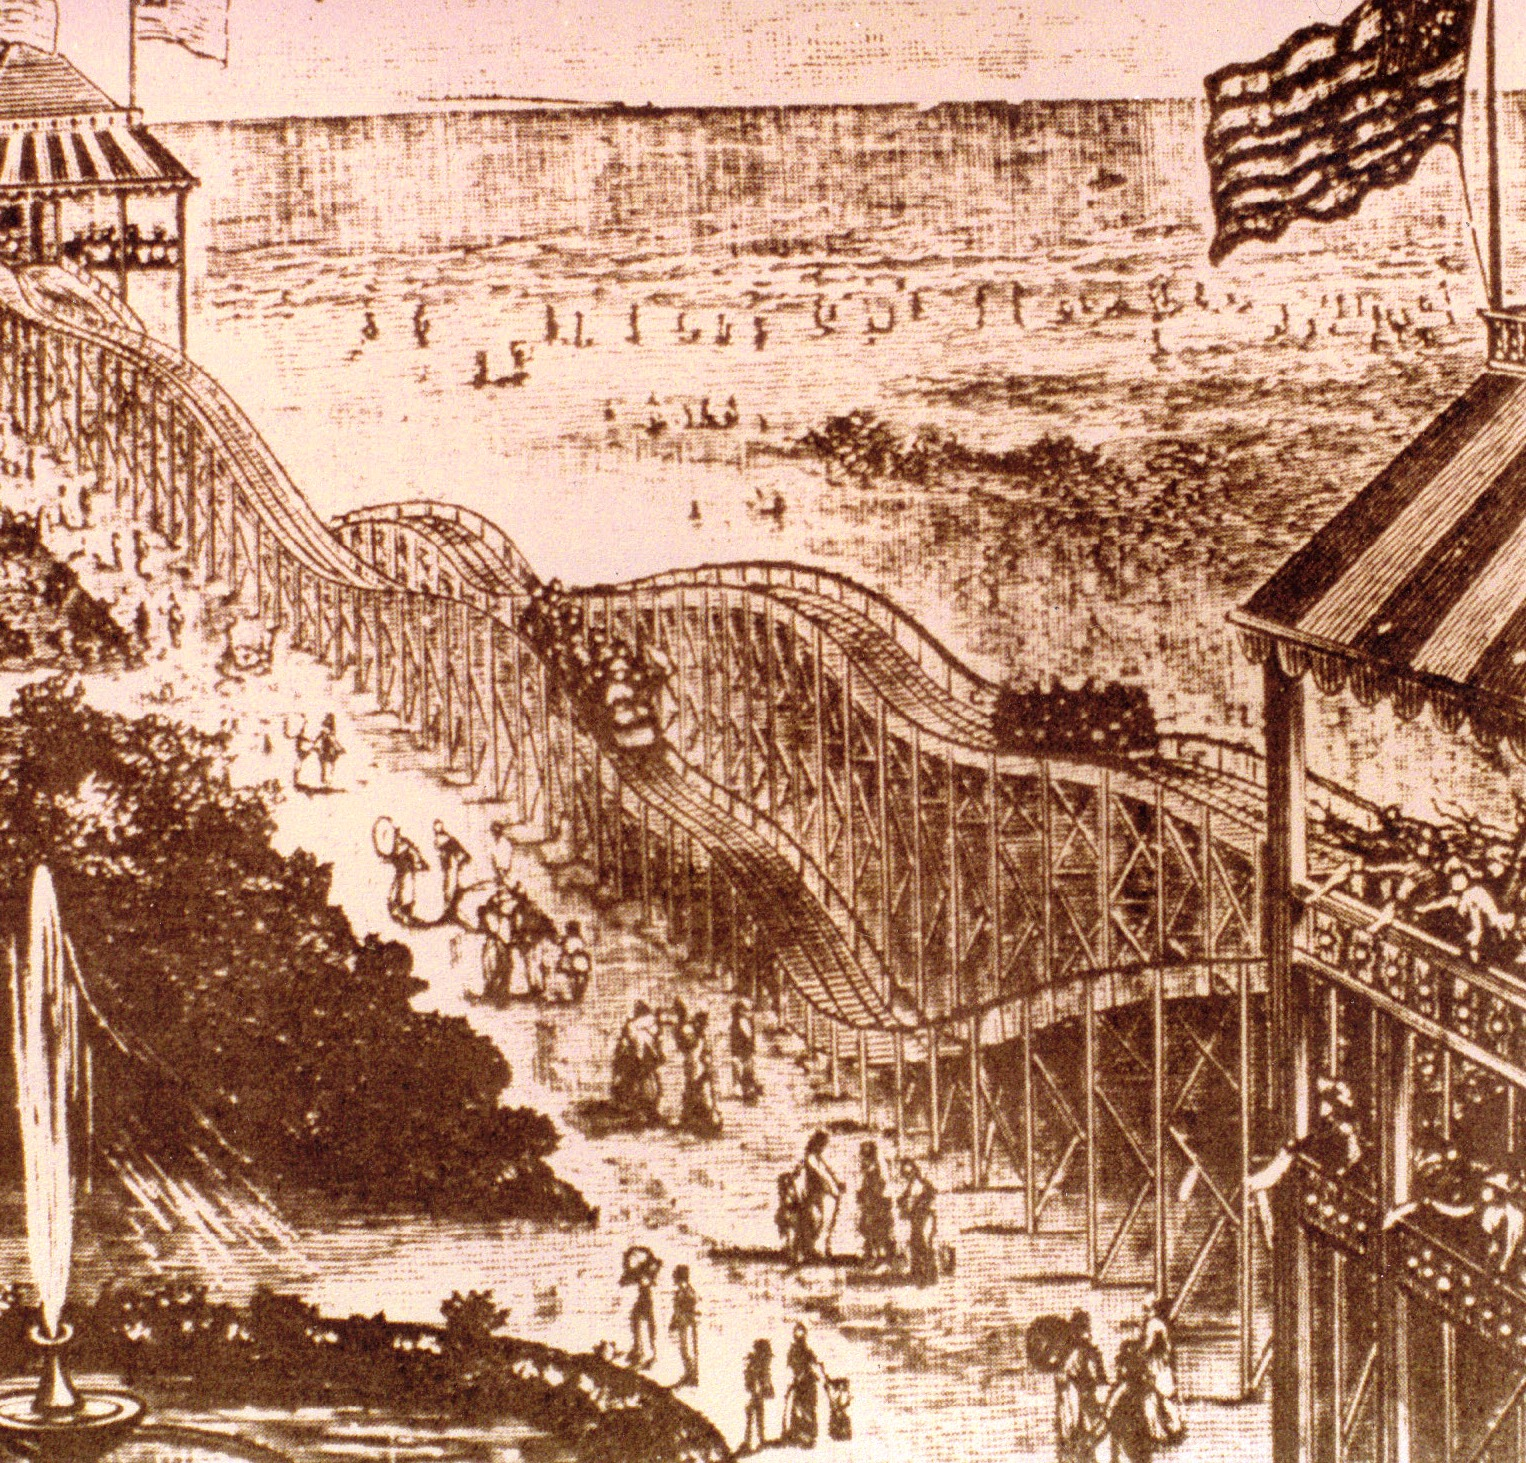 lamarcus adna thompson A popular amusement park ride, developed by lamarcus adna thompson jan 20, 1885 most rollers coasters consist of several cars hooked together and some have just one car on the track | see more ideas about roller coasters, amusement park rides and amusement parks.